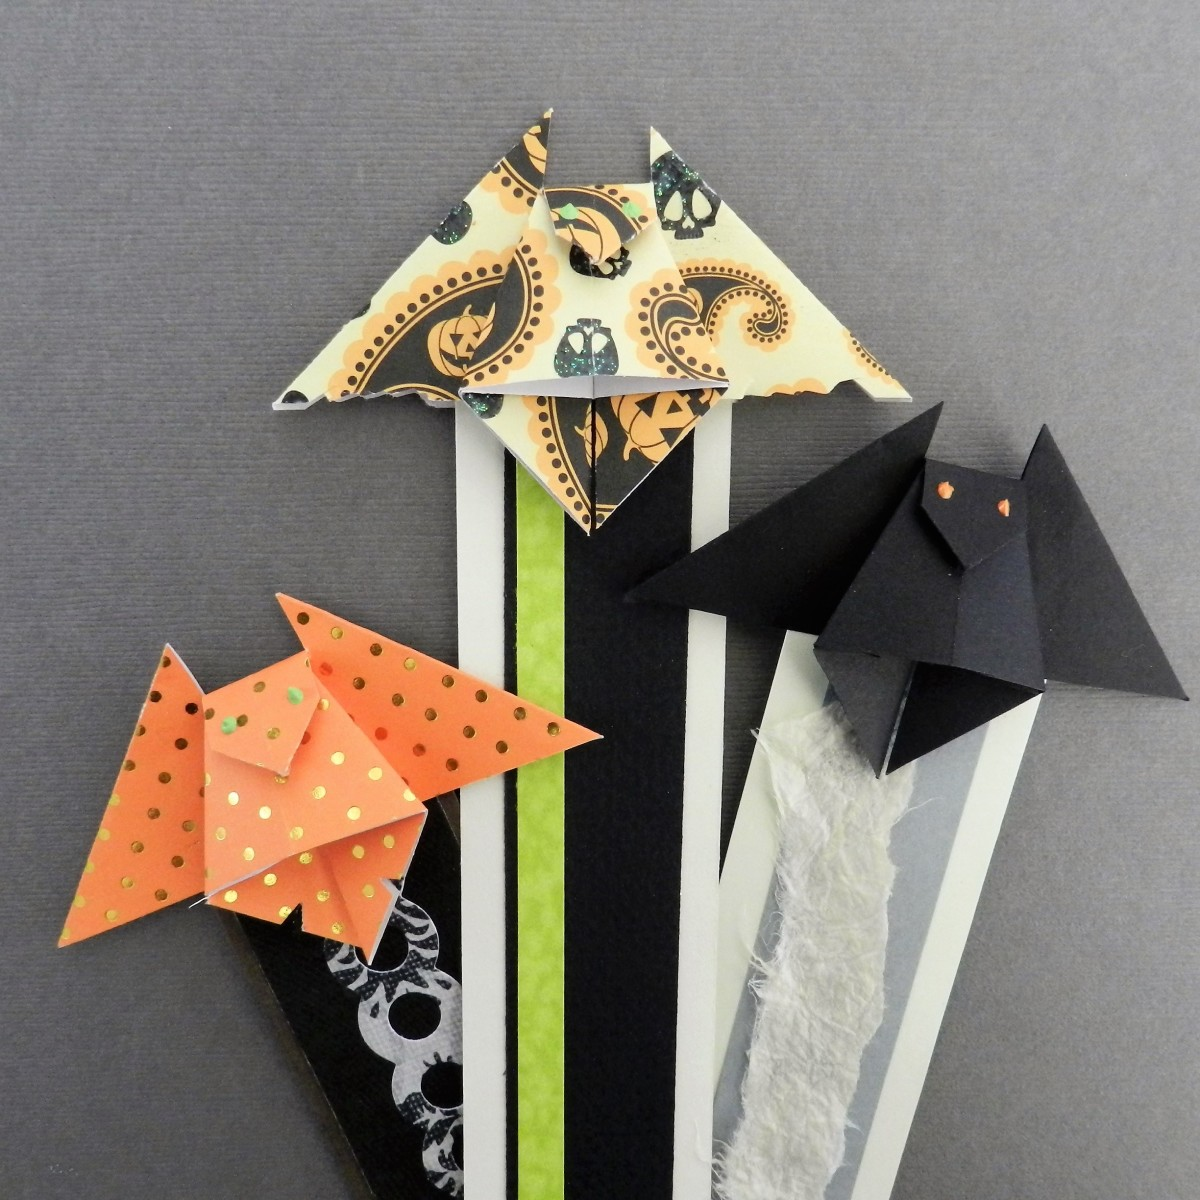 Origami Bat Paper Craft